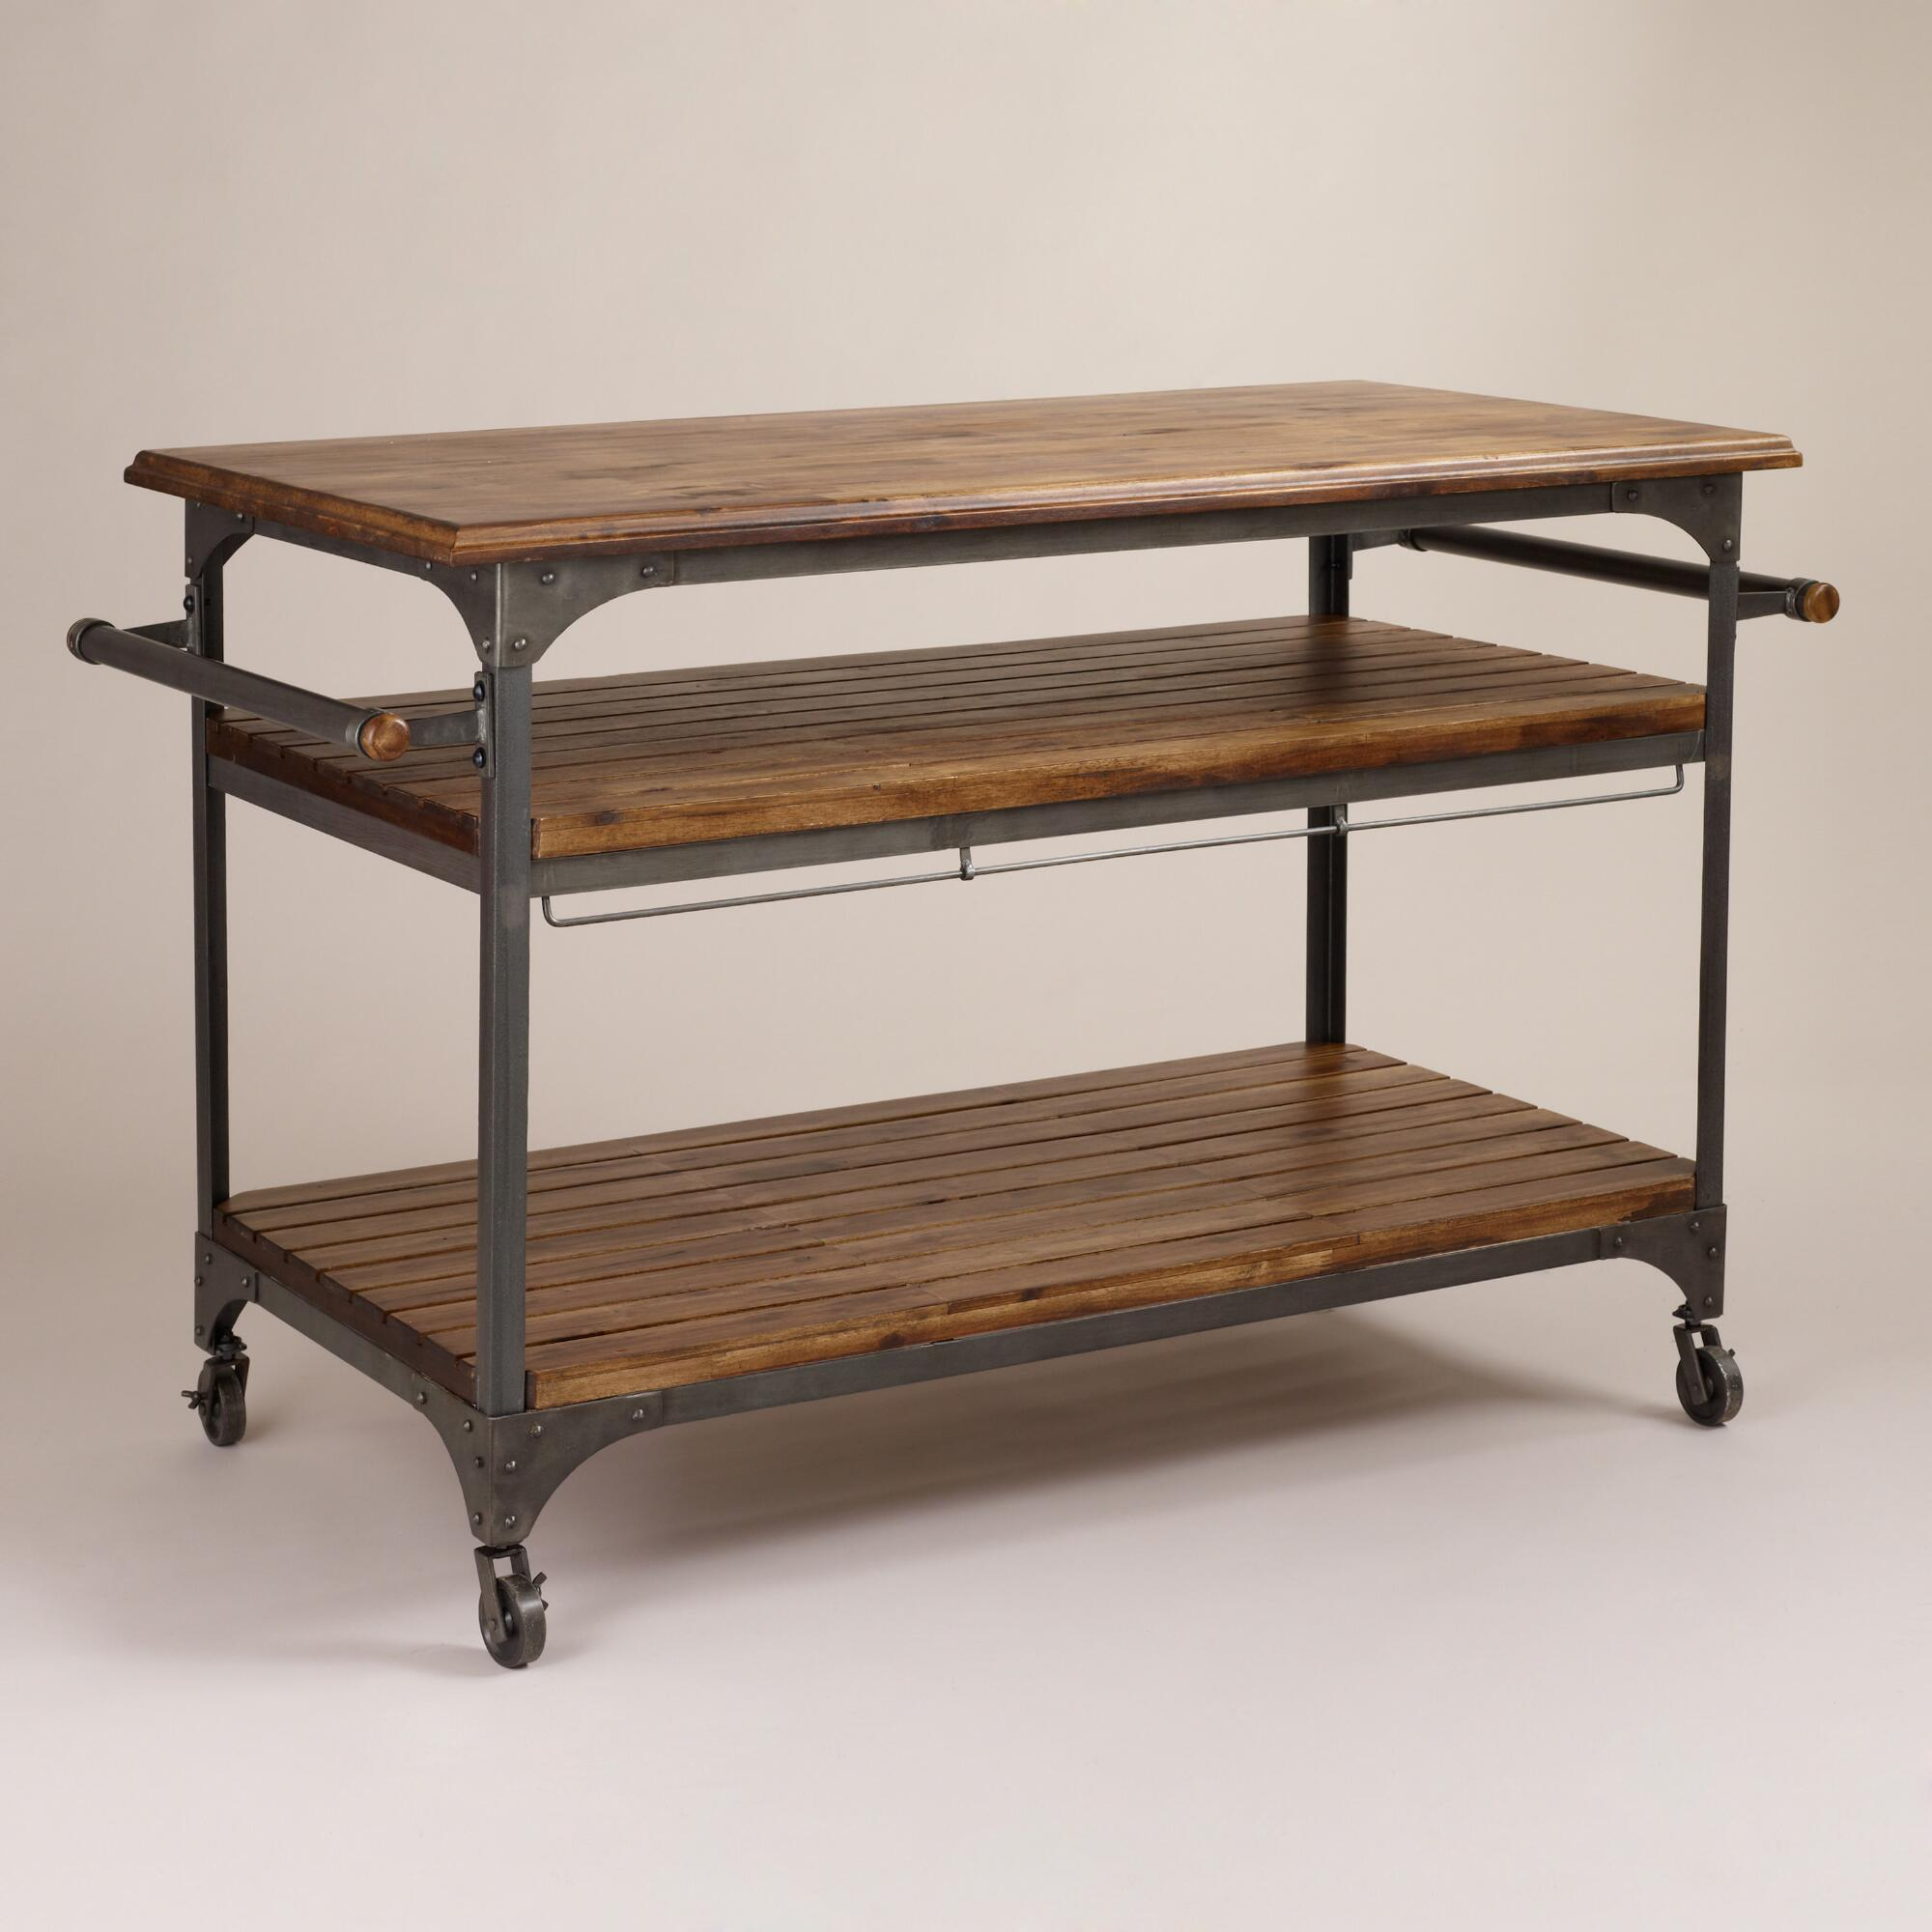 Wood and metal jackson kitchen cart world market - Industrial kitchen island for sale ...